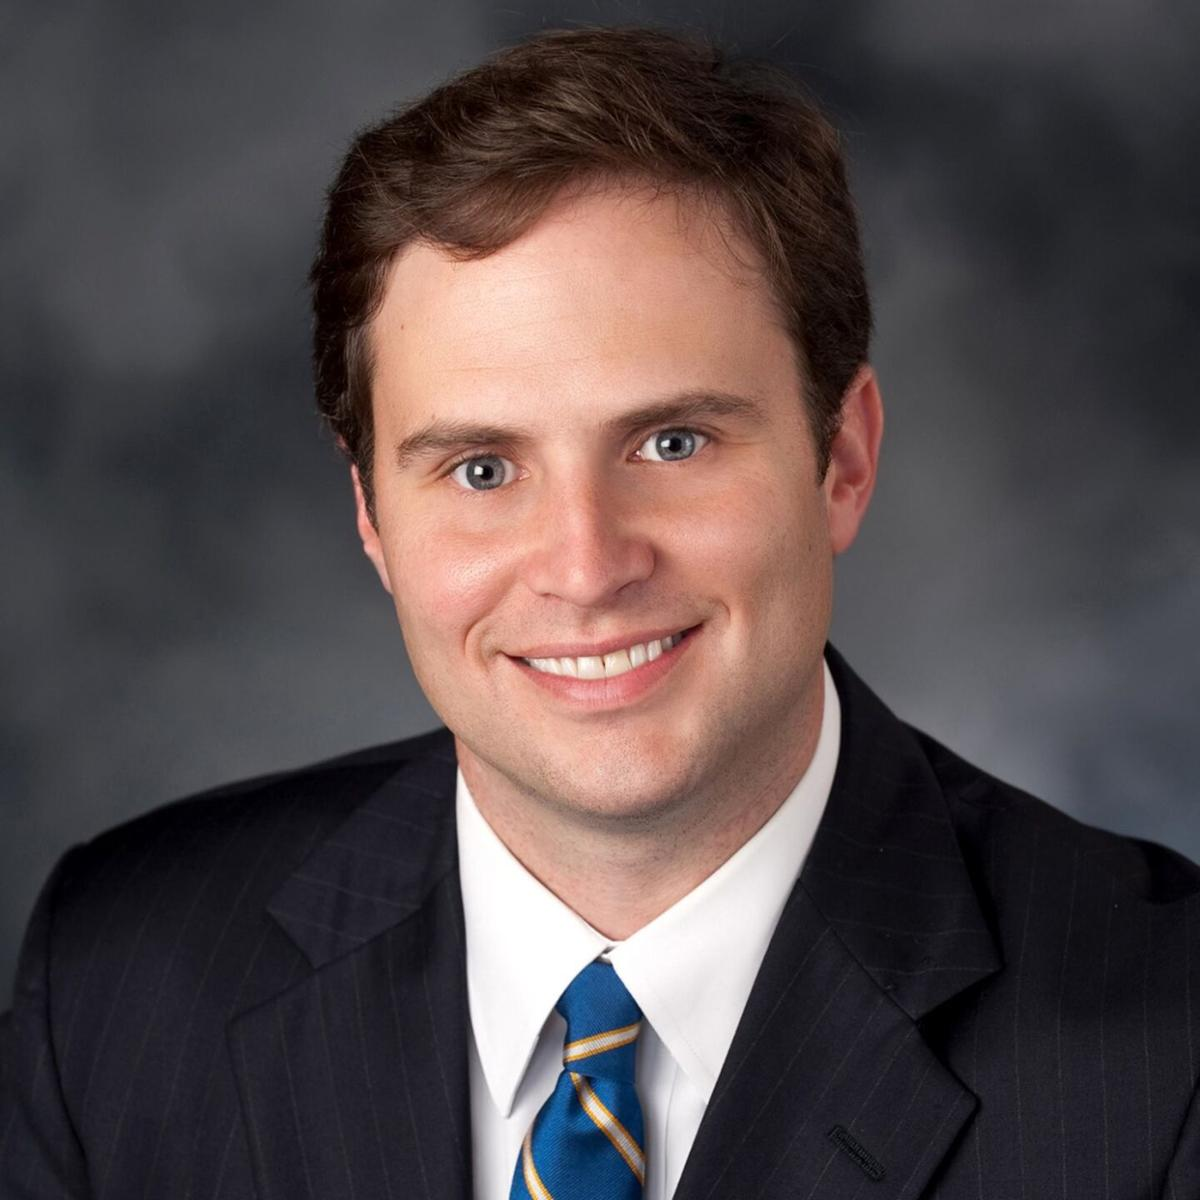 Rep. Tanner Magee